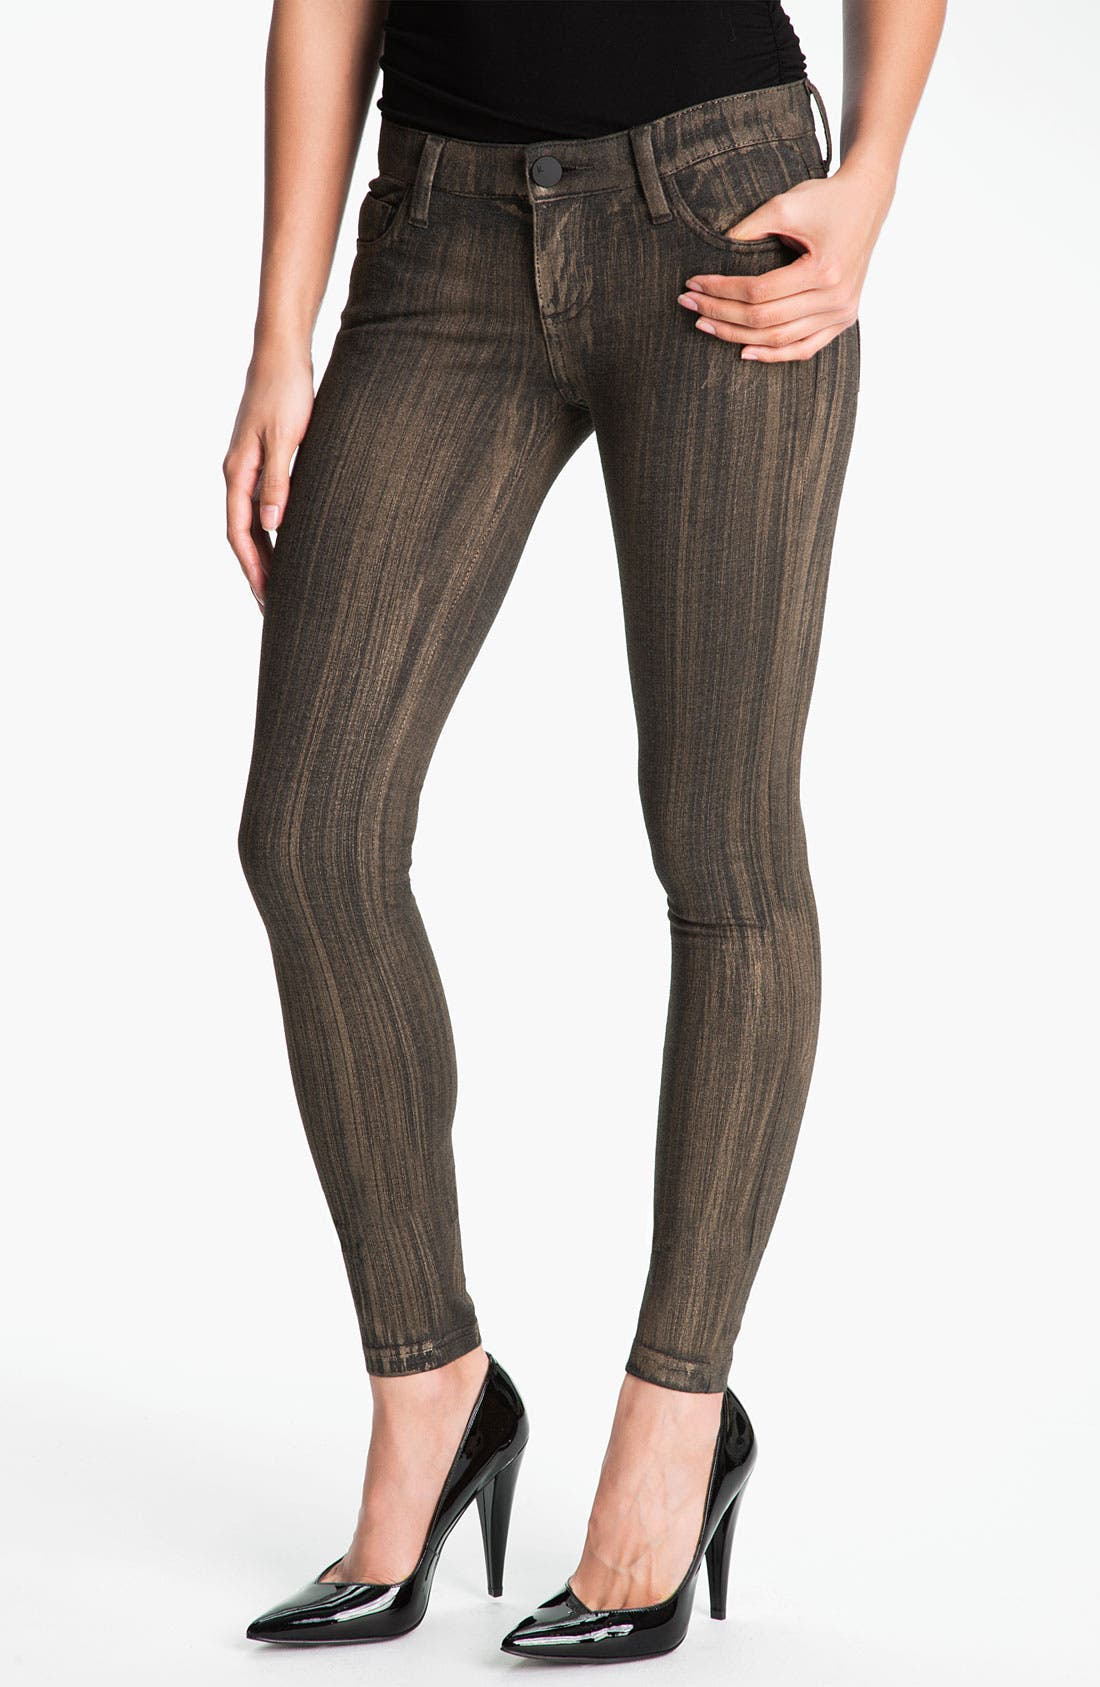 Main Image - KUT from the Kloth 'Jennifer' Skinny Stretch Jeans (Online Exclusive)